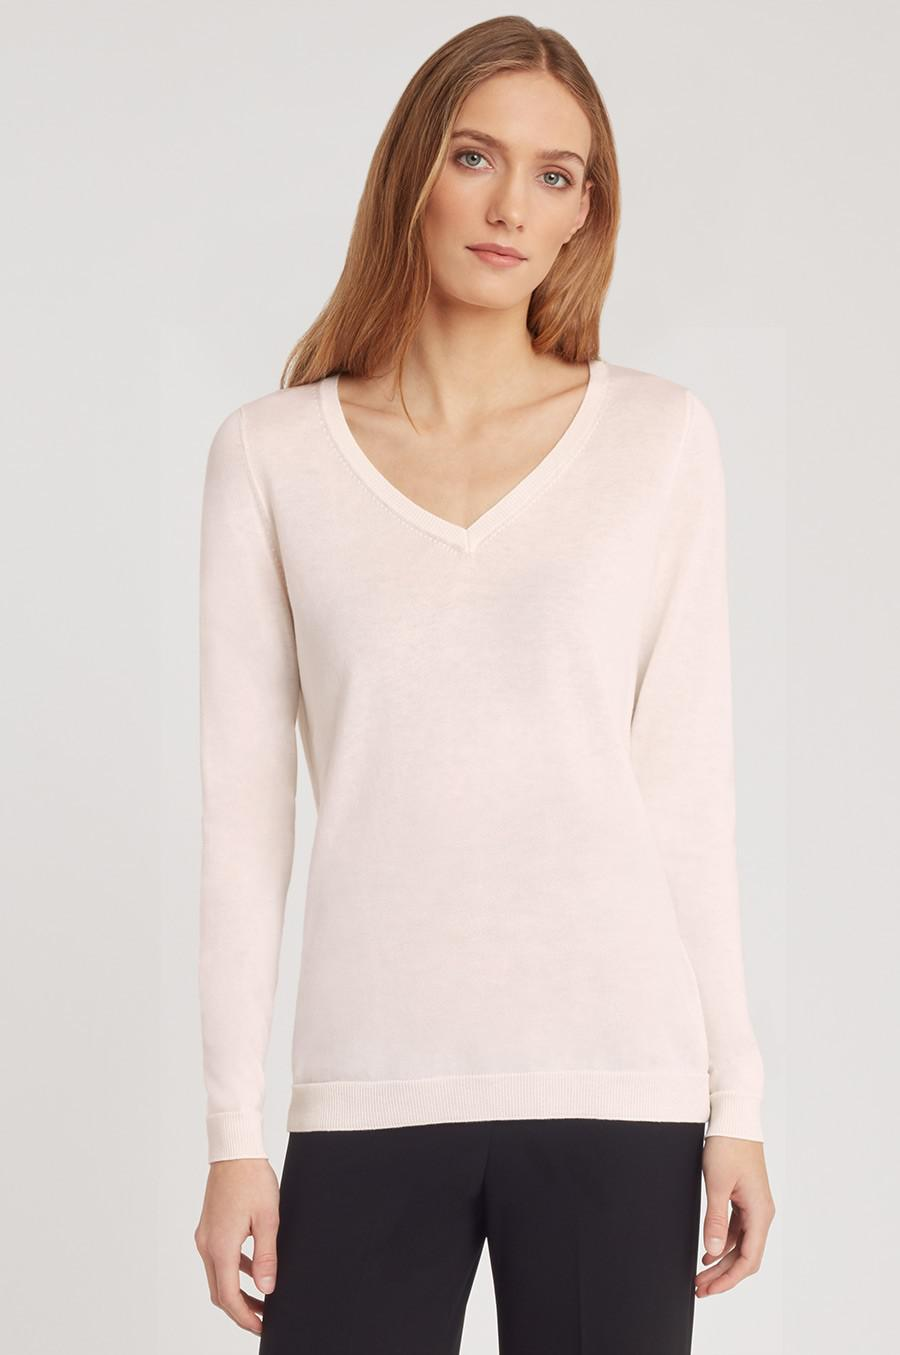 Women's Classic Cotton Cashmere V-Neck Sweater in Blush Pink   Size: 1